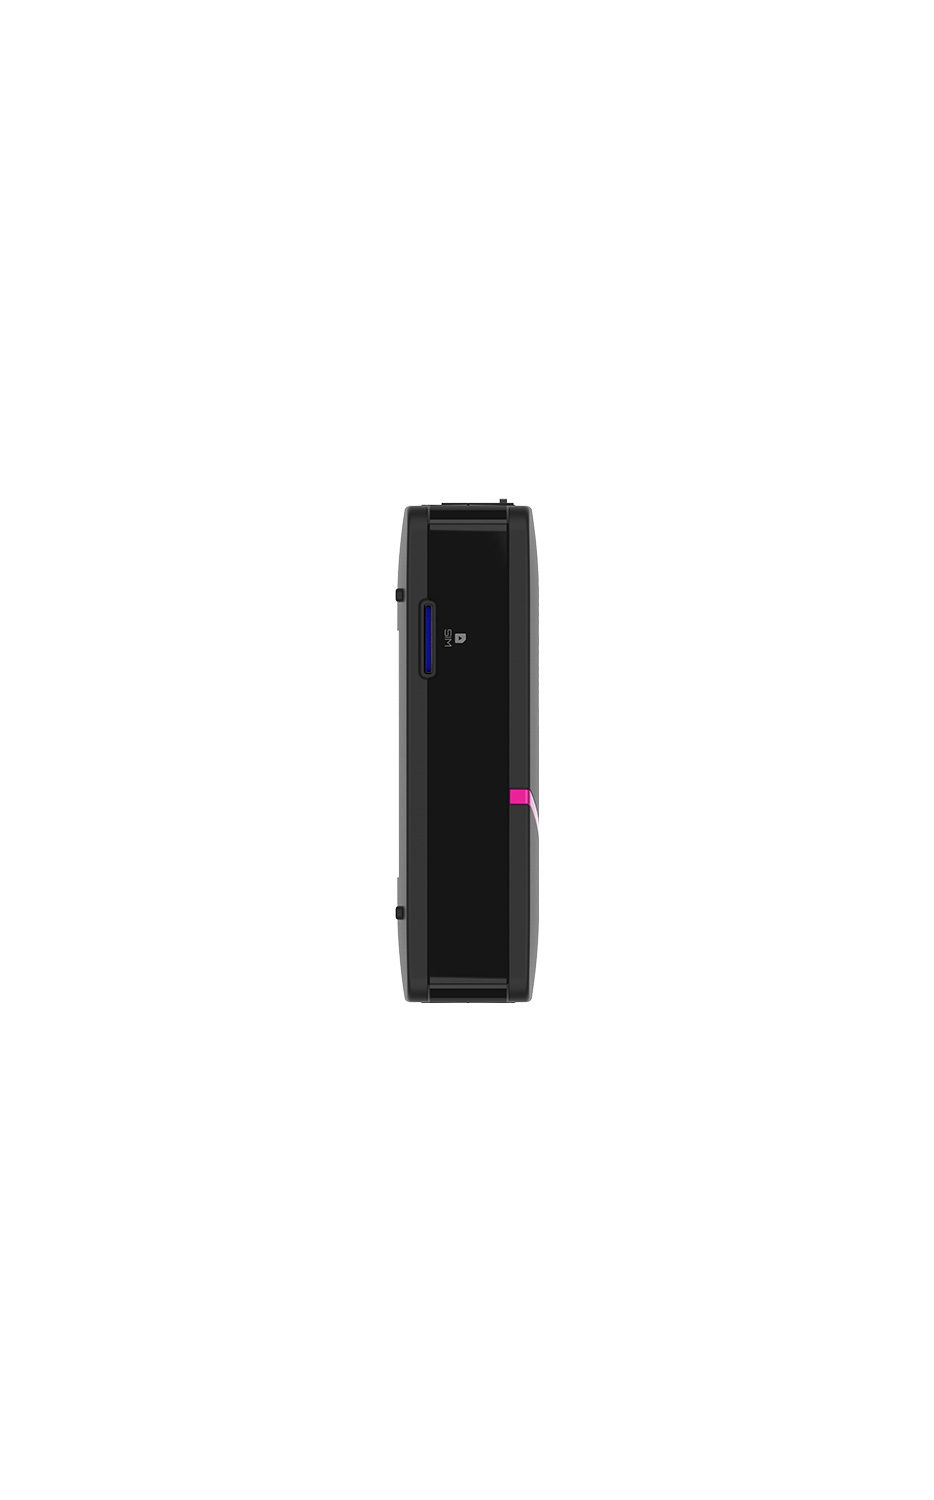 T mobile linelink home phone adapter affordable home phone service kristyandbryce Image collections